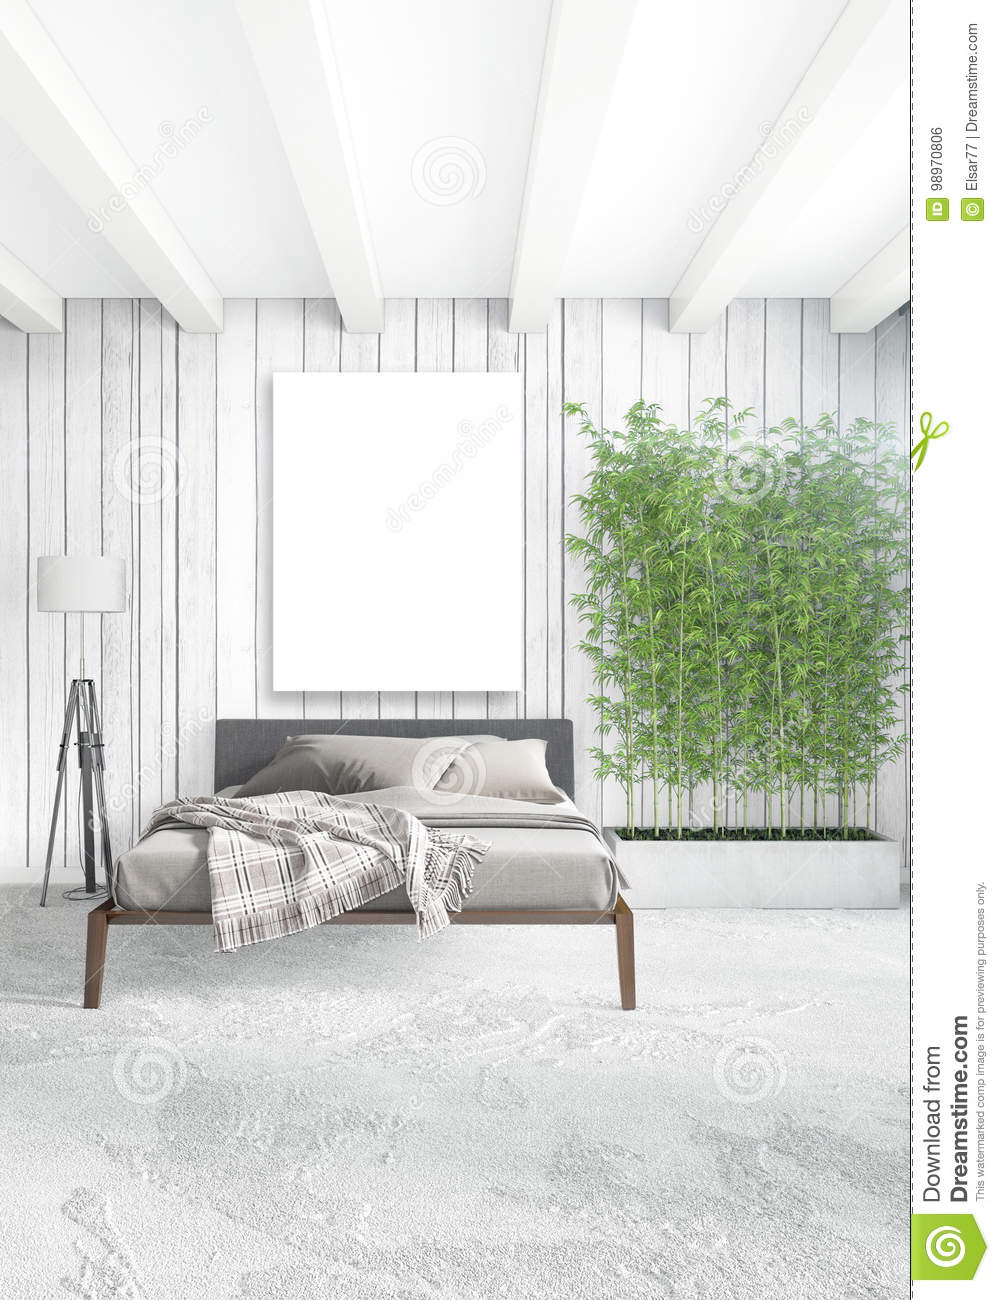 Vertical Modern Interior Bedroom Or Living Room With Eclectic Wall